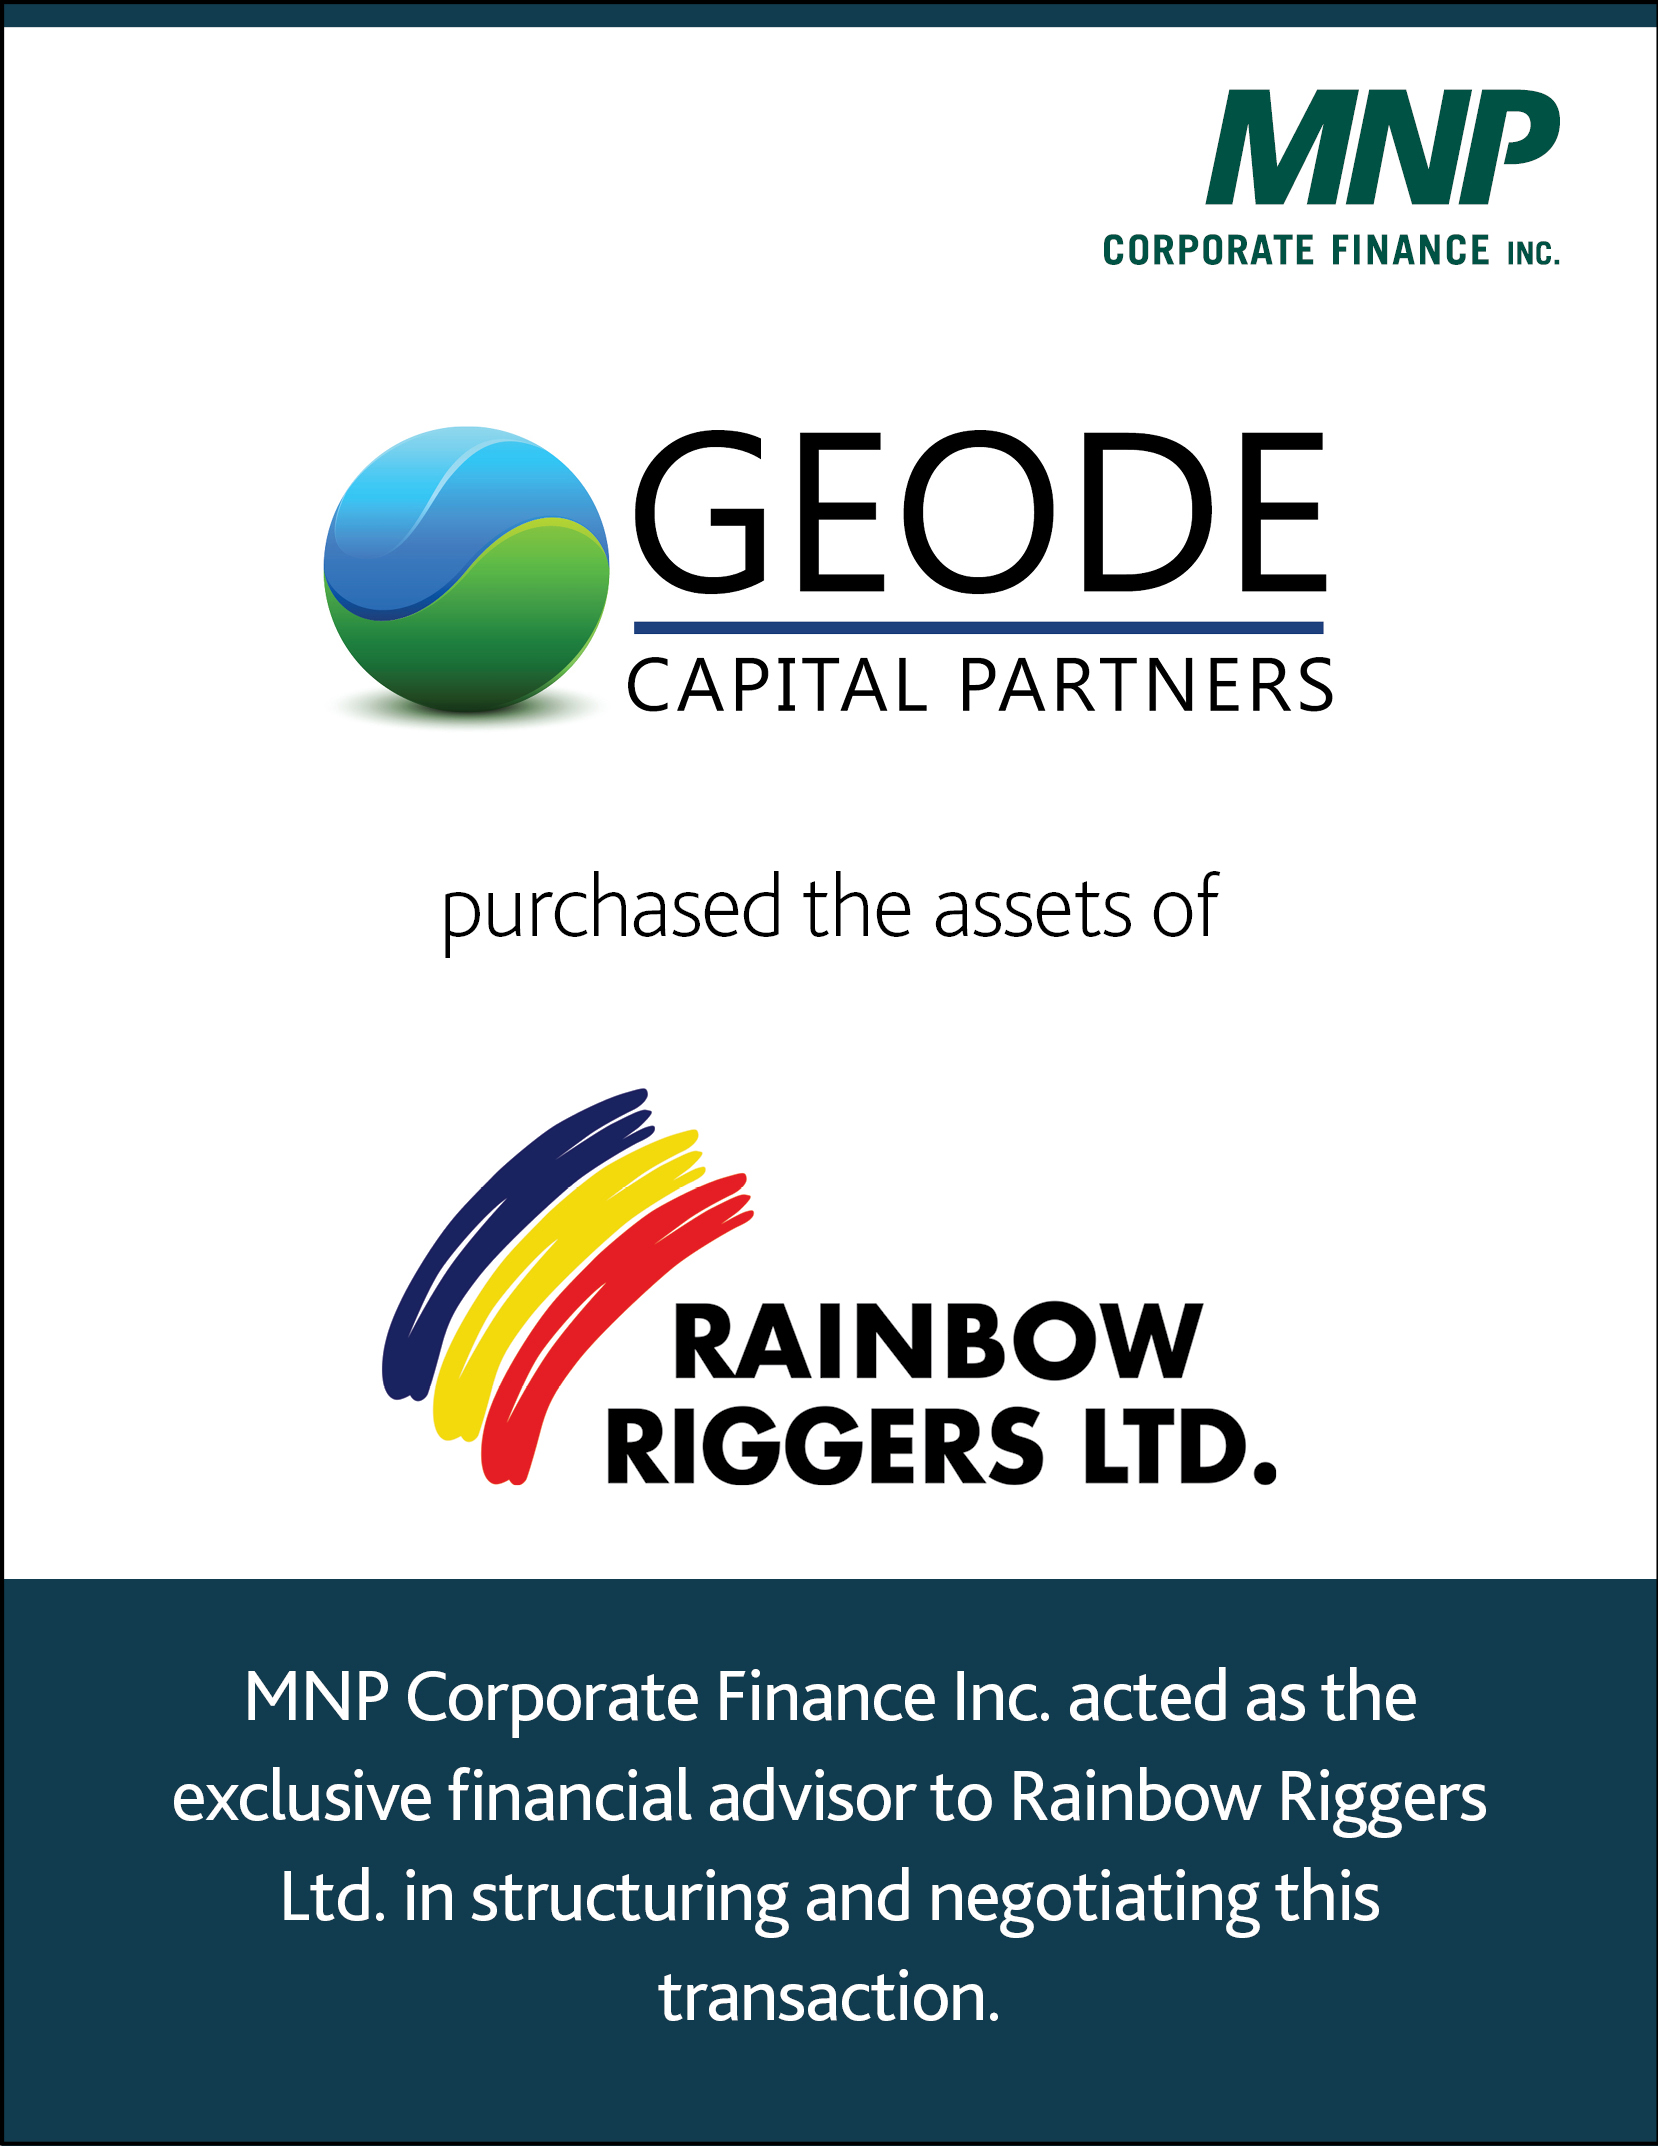 Geode Capital Partners purchased the assets of Rainbow Riggers Ltd.